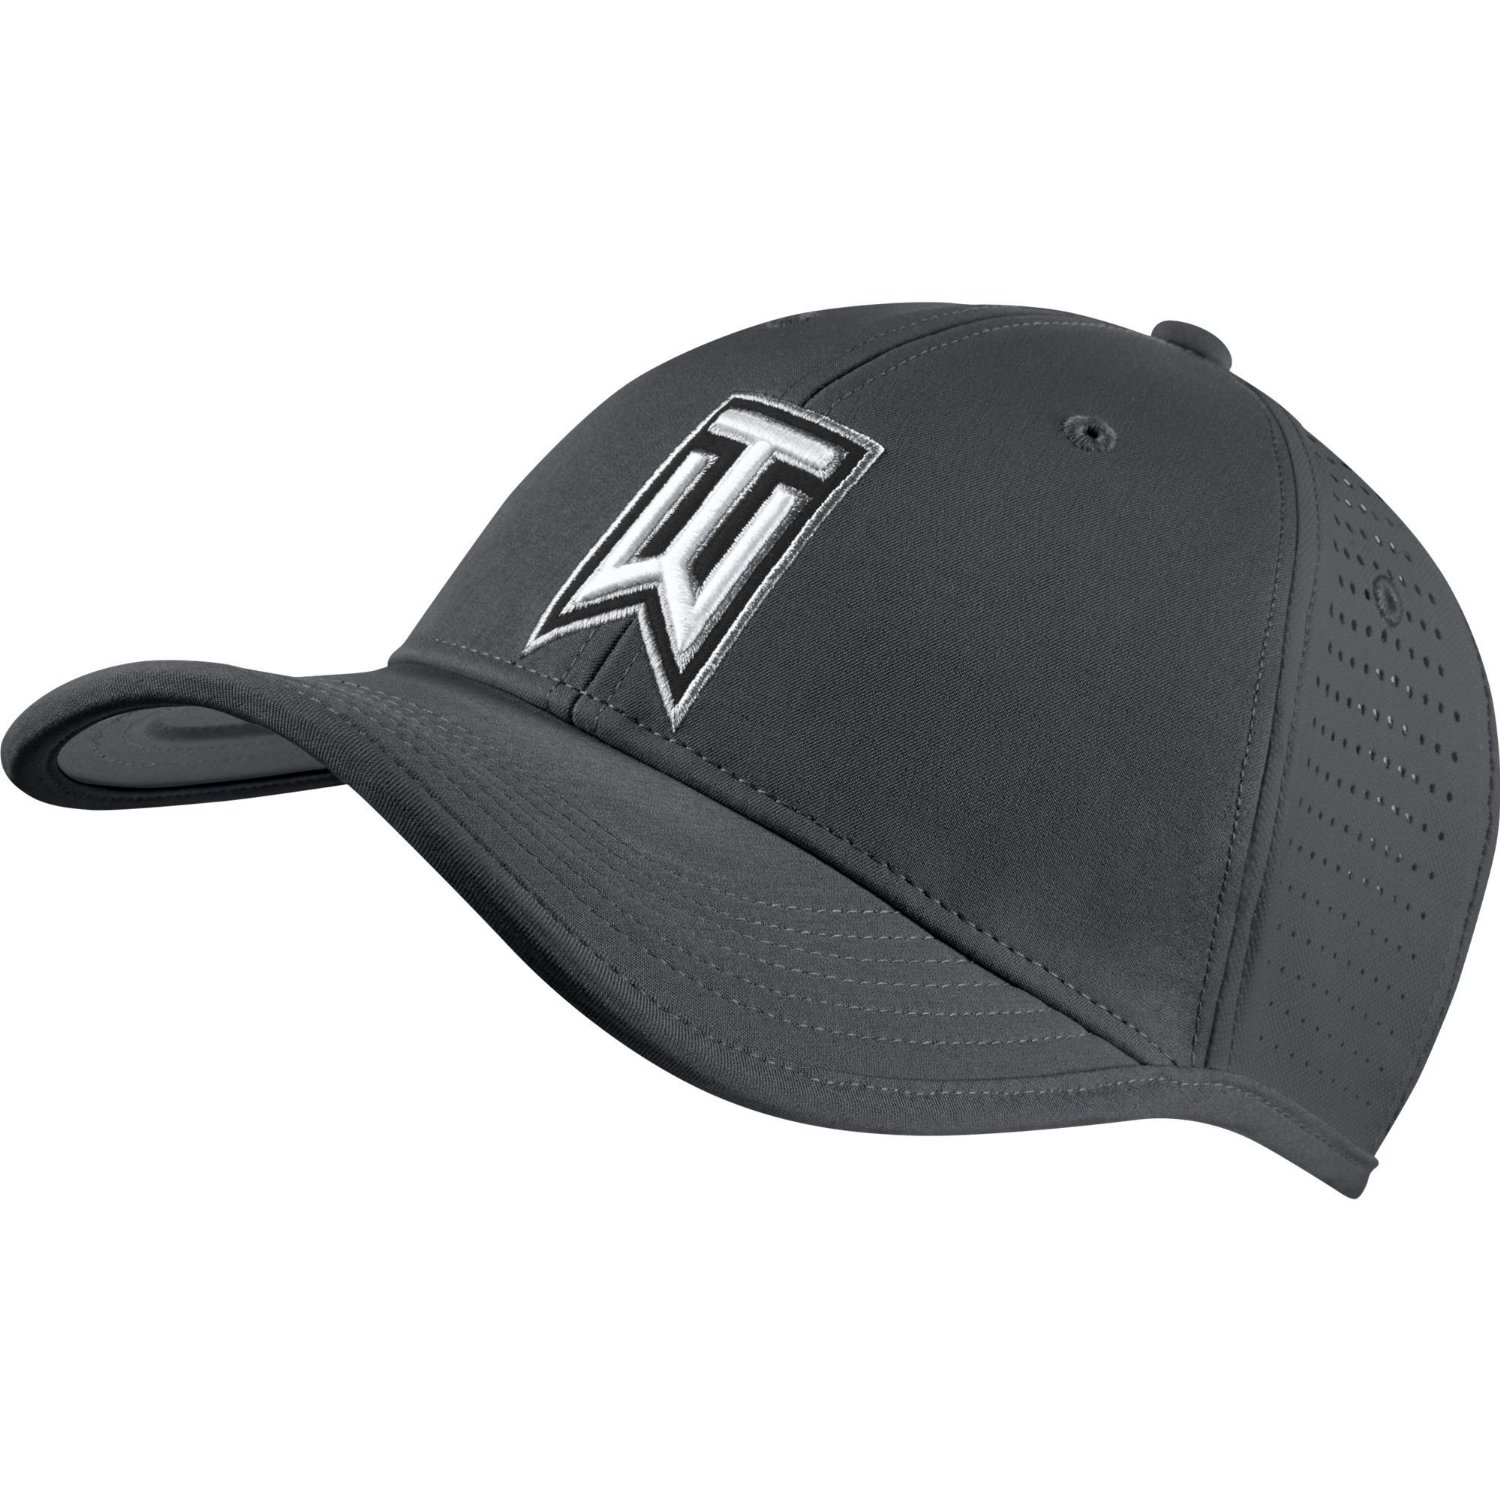 aabcc1f400b NEW Nike Tiger Woods Ultralight Tour Perforated Grey Black Adjustable Hat  Cap